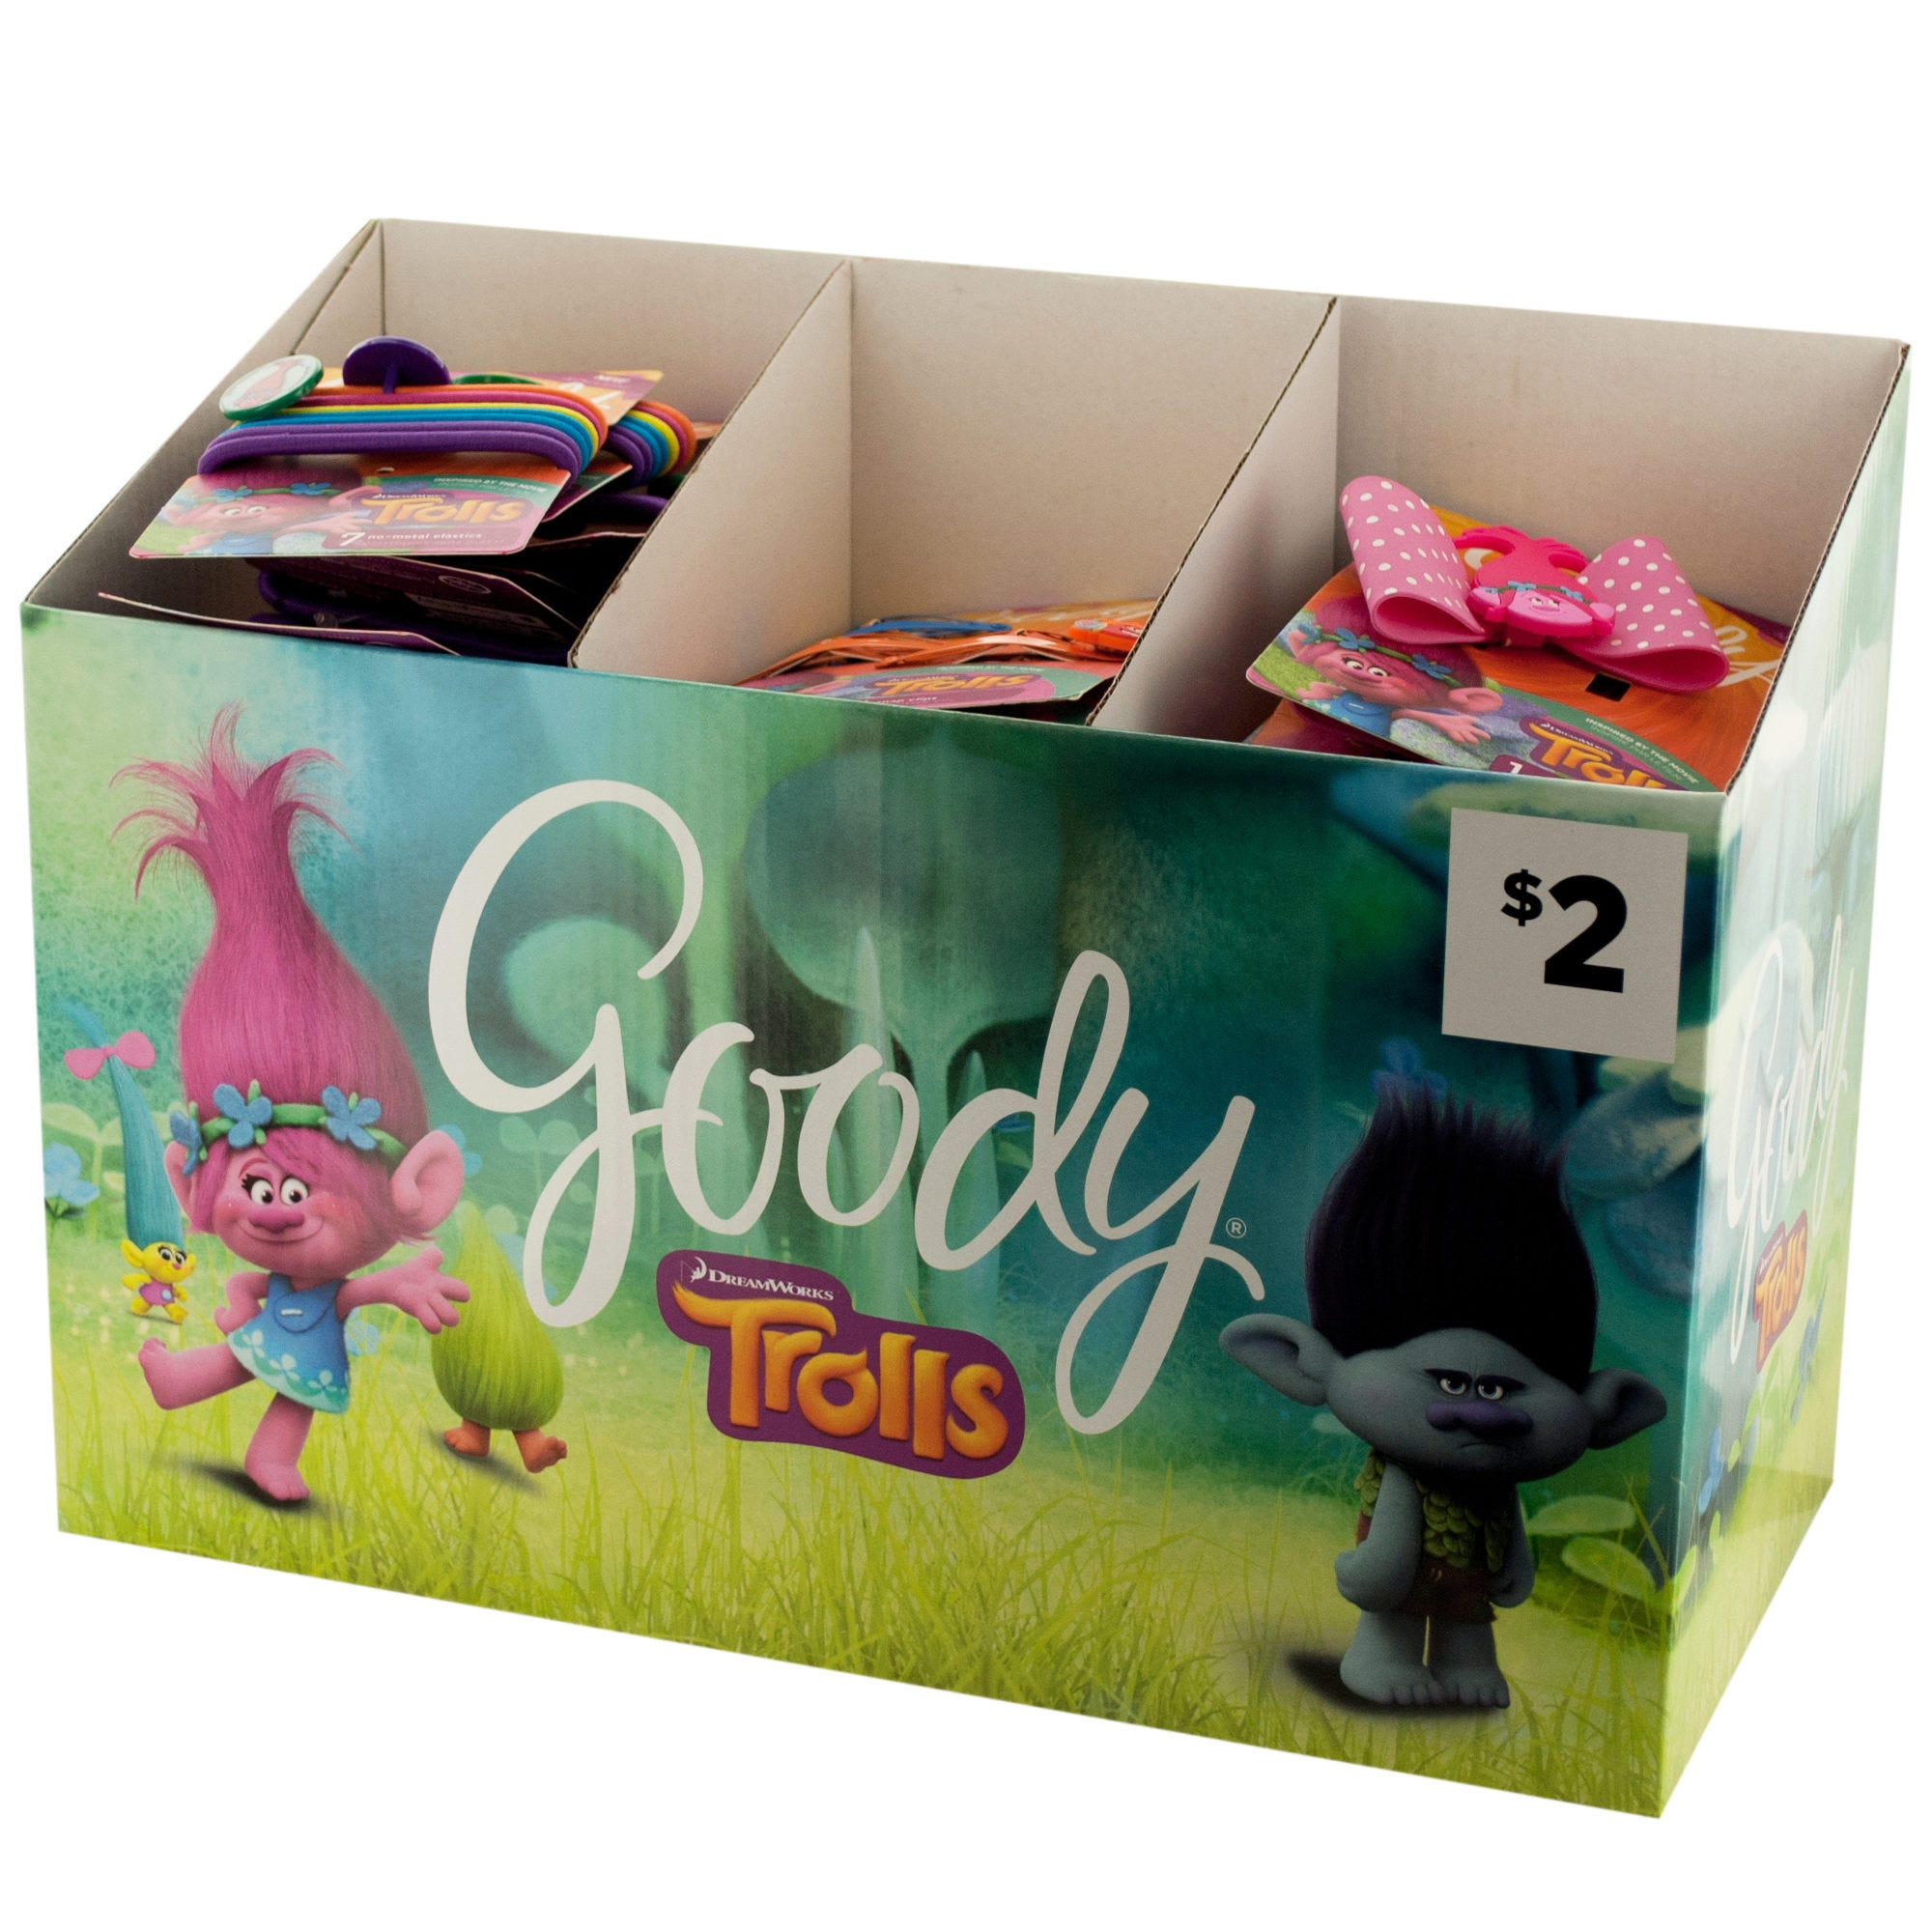 Goody Girls Trolls HAIR ACCESSORIES Countertop Display- Qty 24